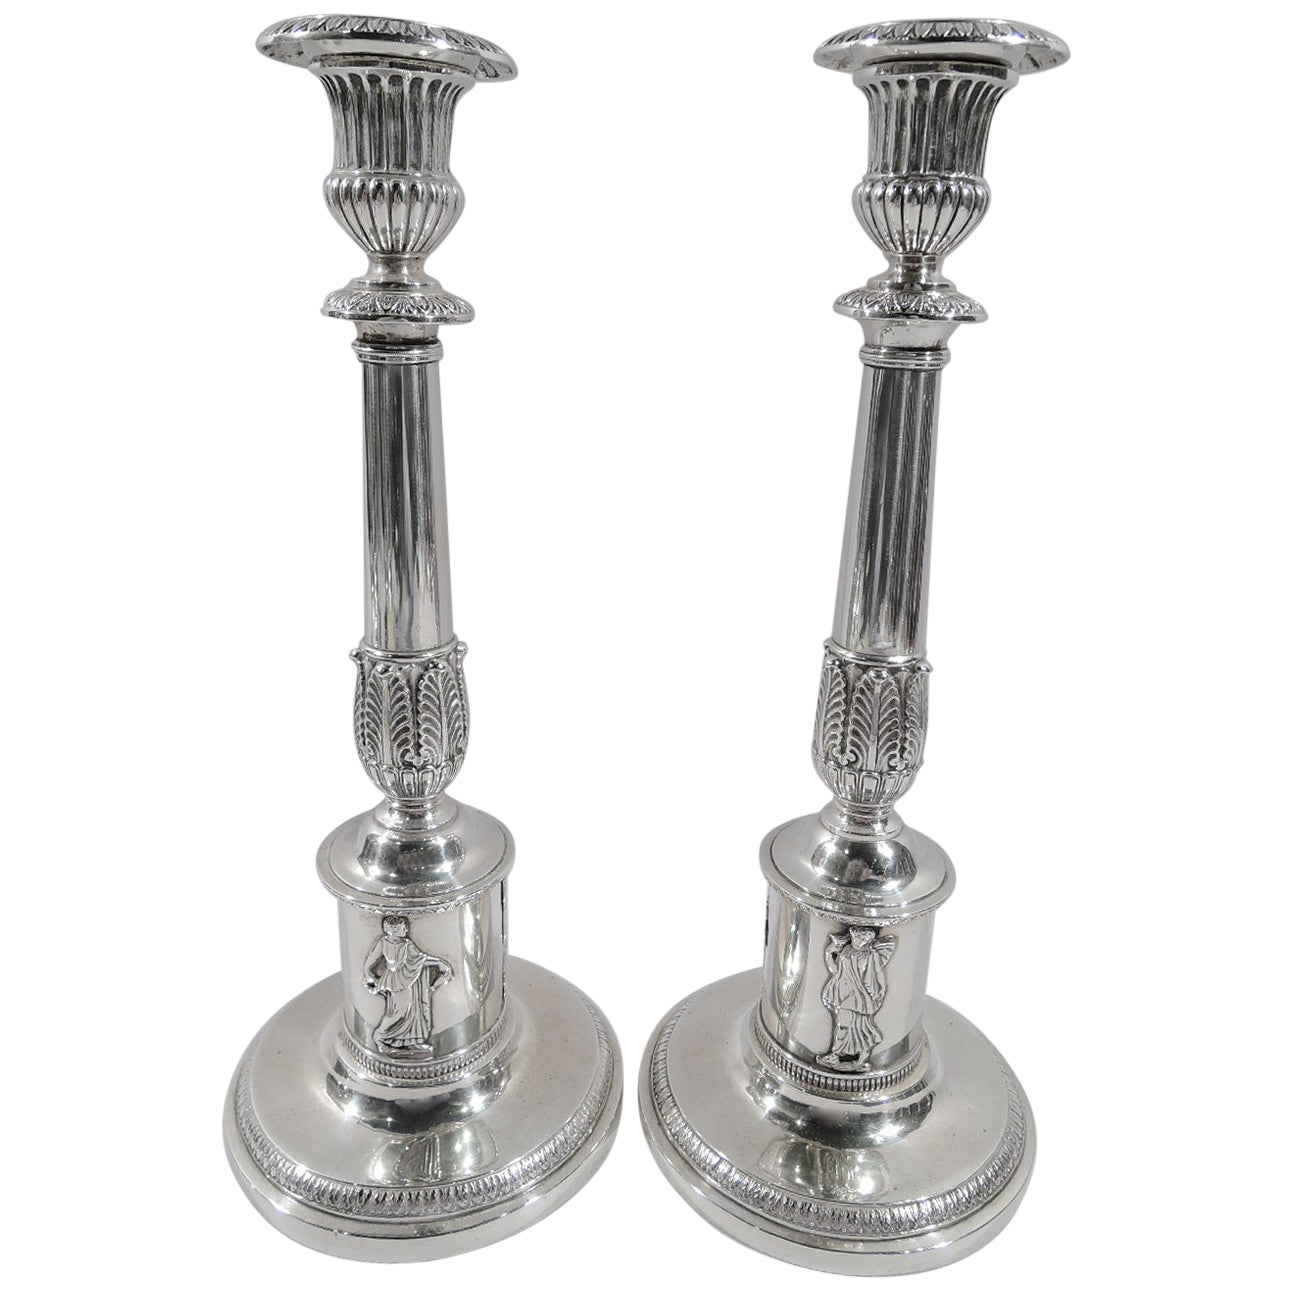 Pair of German Neoclassical Tall Silver Candlesticks, Early 19th Century